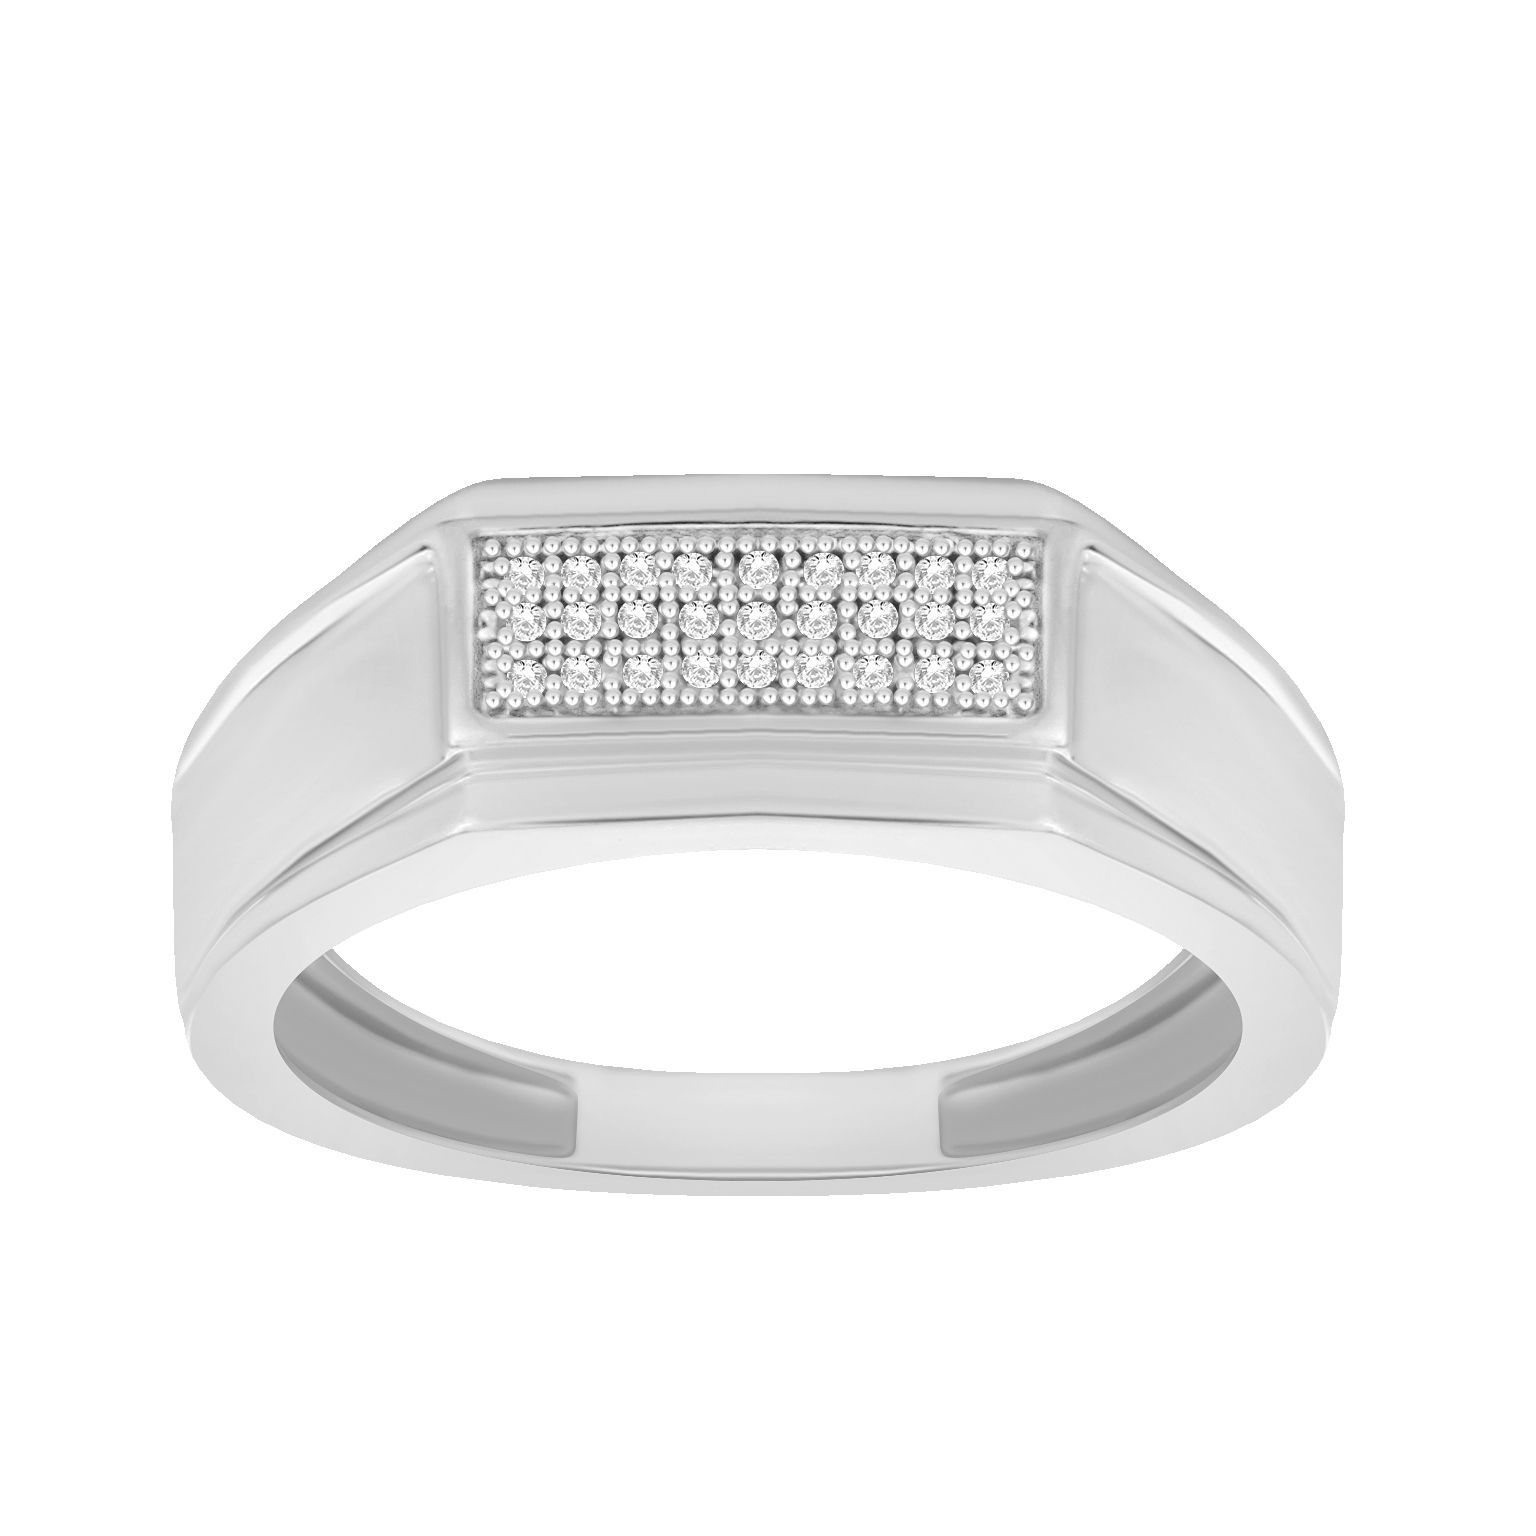 Trillion Designs Men's .925 Sterling Silver 1/20-carat Natural H-I, I2 Diamond Band (Size-7), Size: 7, White